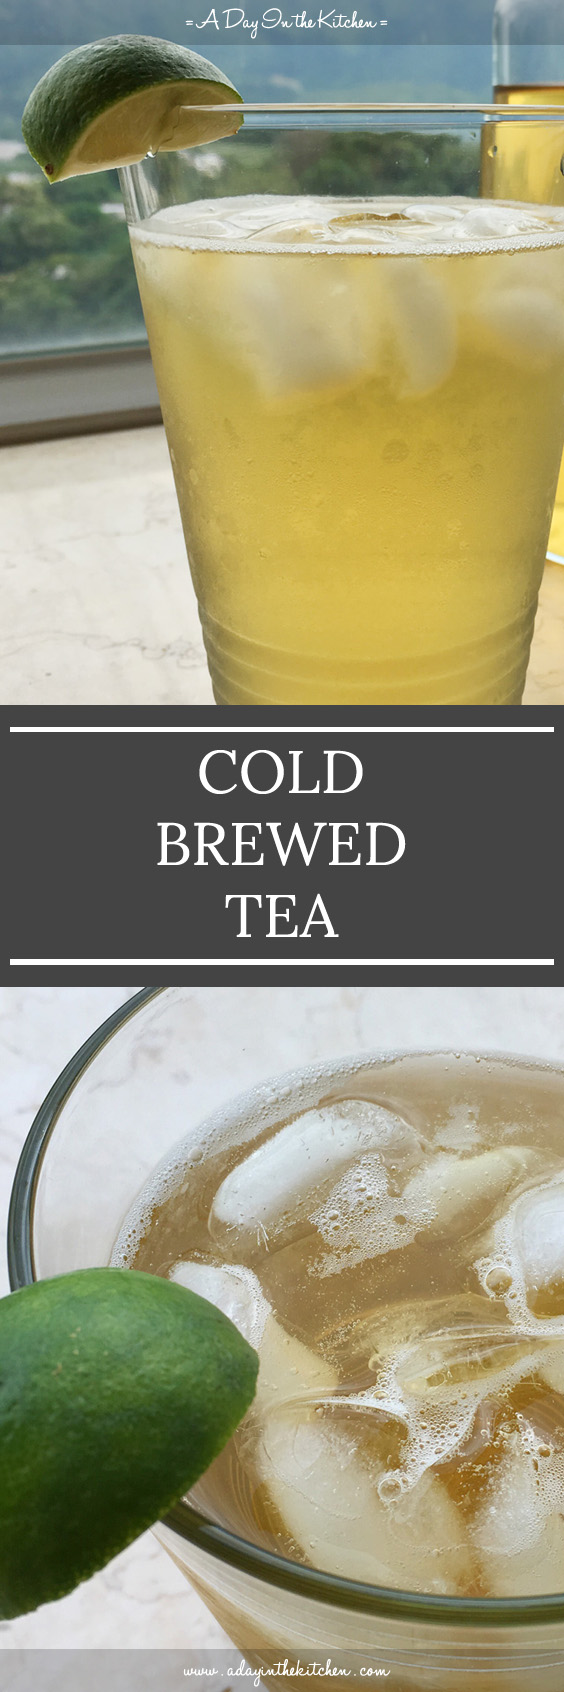 Cold Brewed Tea is a refreshing drink that is smooth and not bitter. Perfect for those hot summer days!